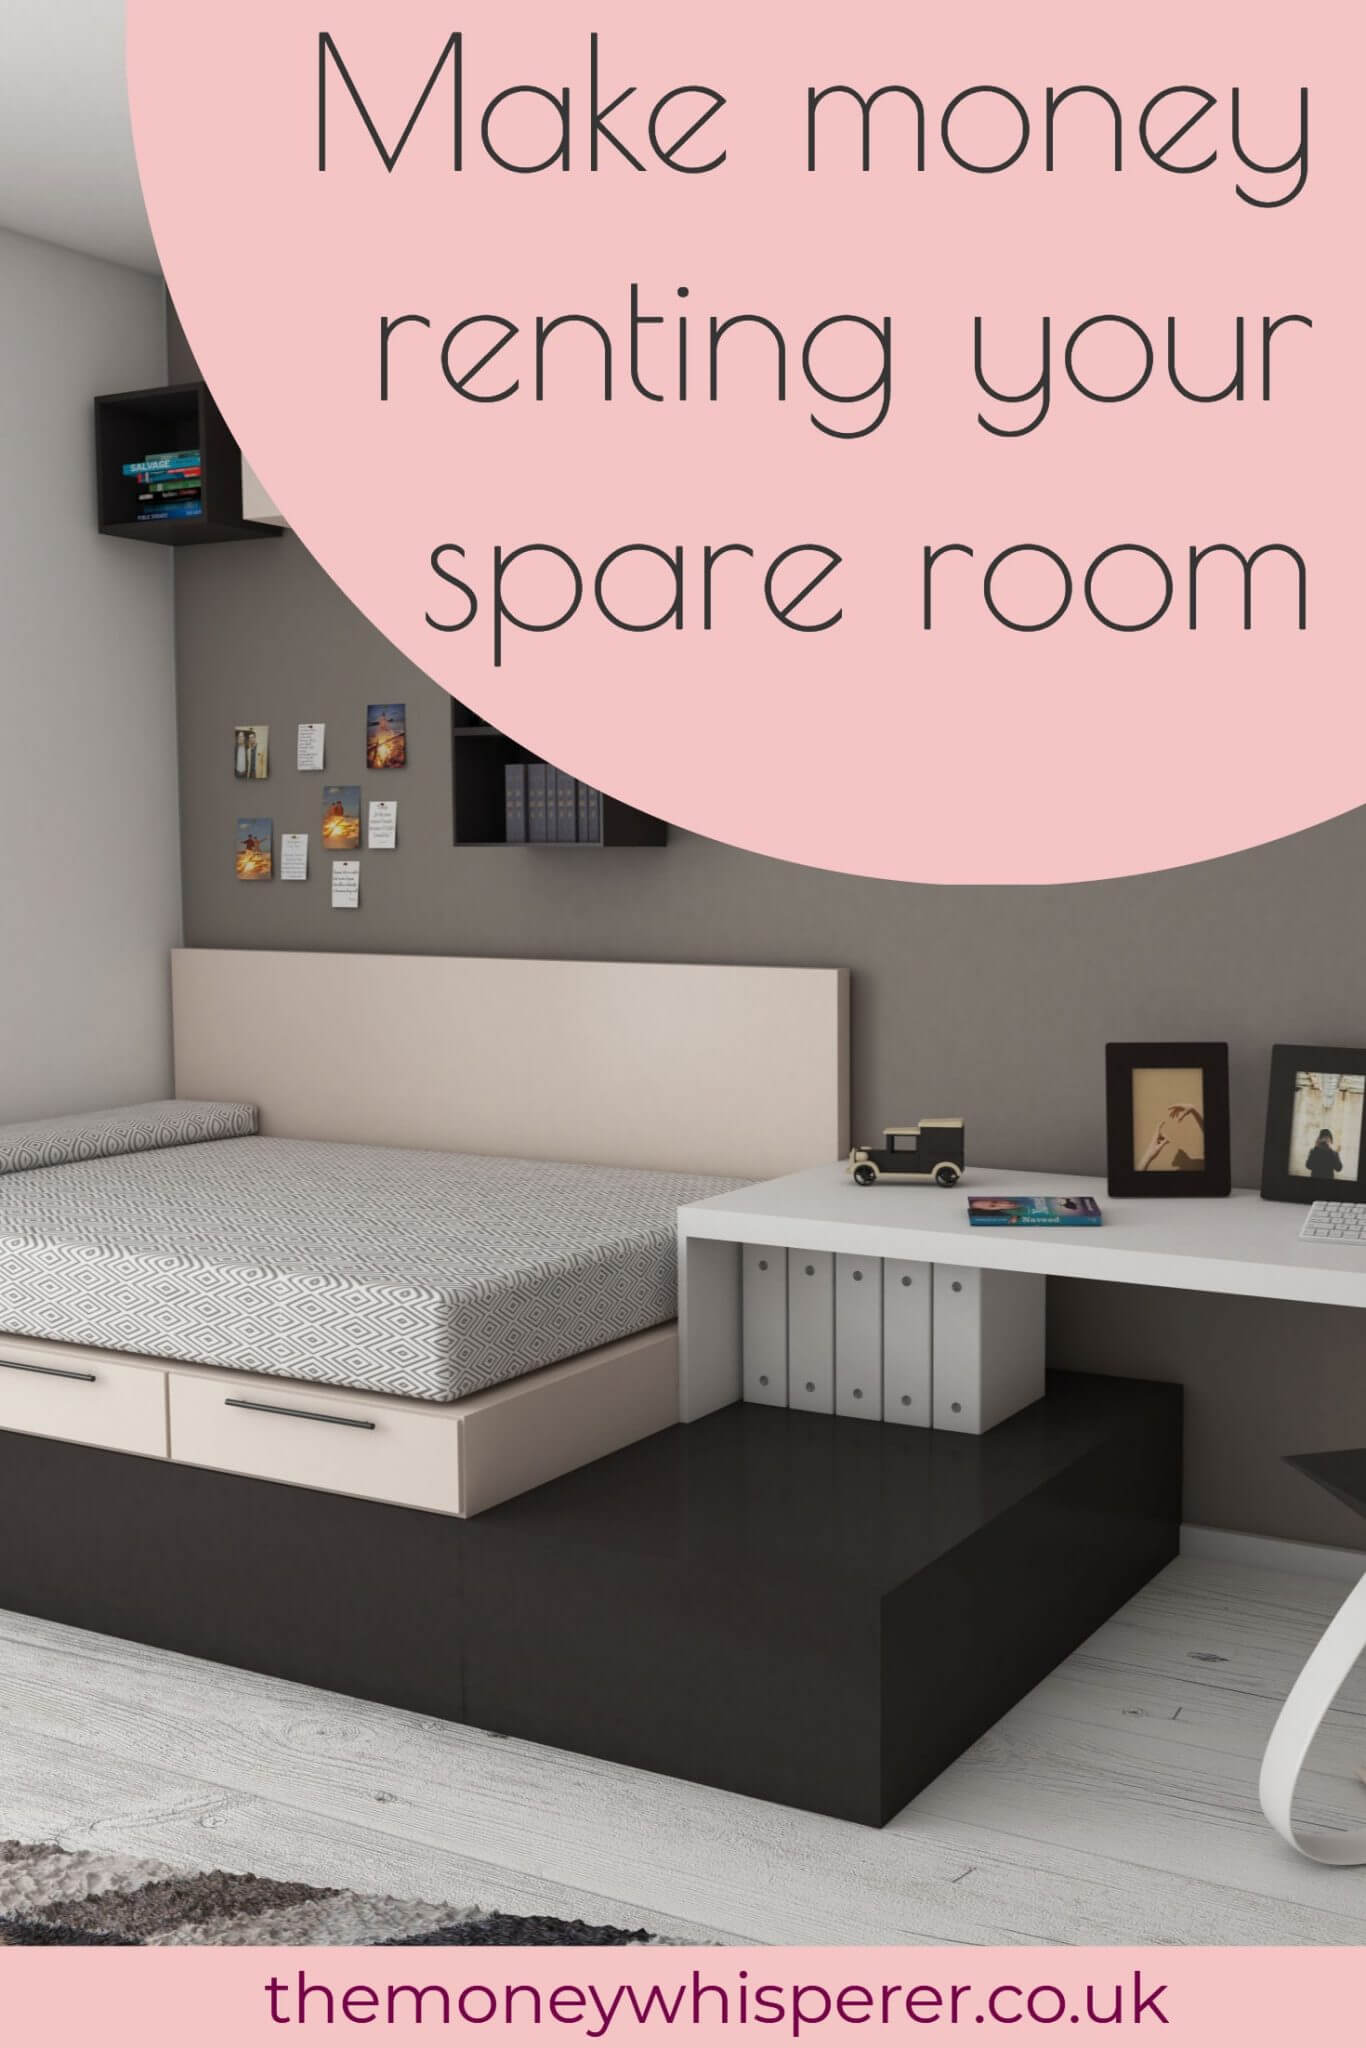 Make money renting out your spare room with the Rent a Room Scheme - find everything you need to know about the scheme here. #makemoney #sidehustle